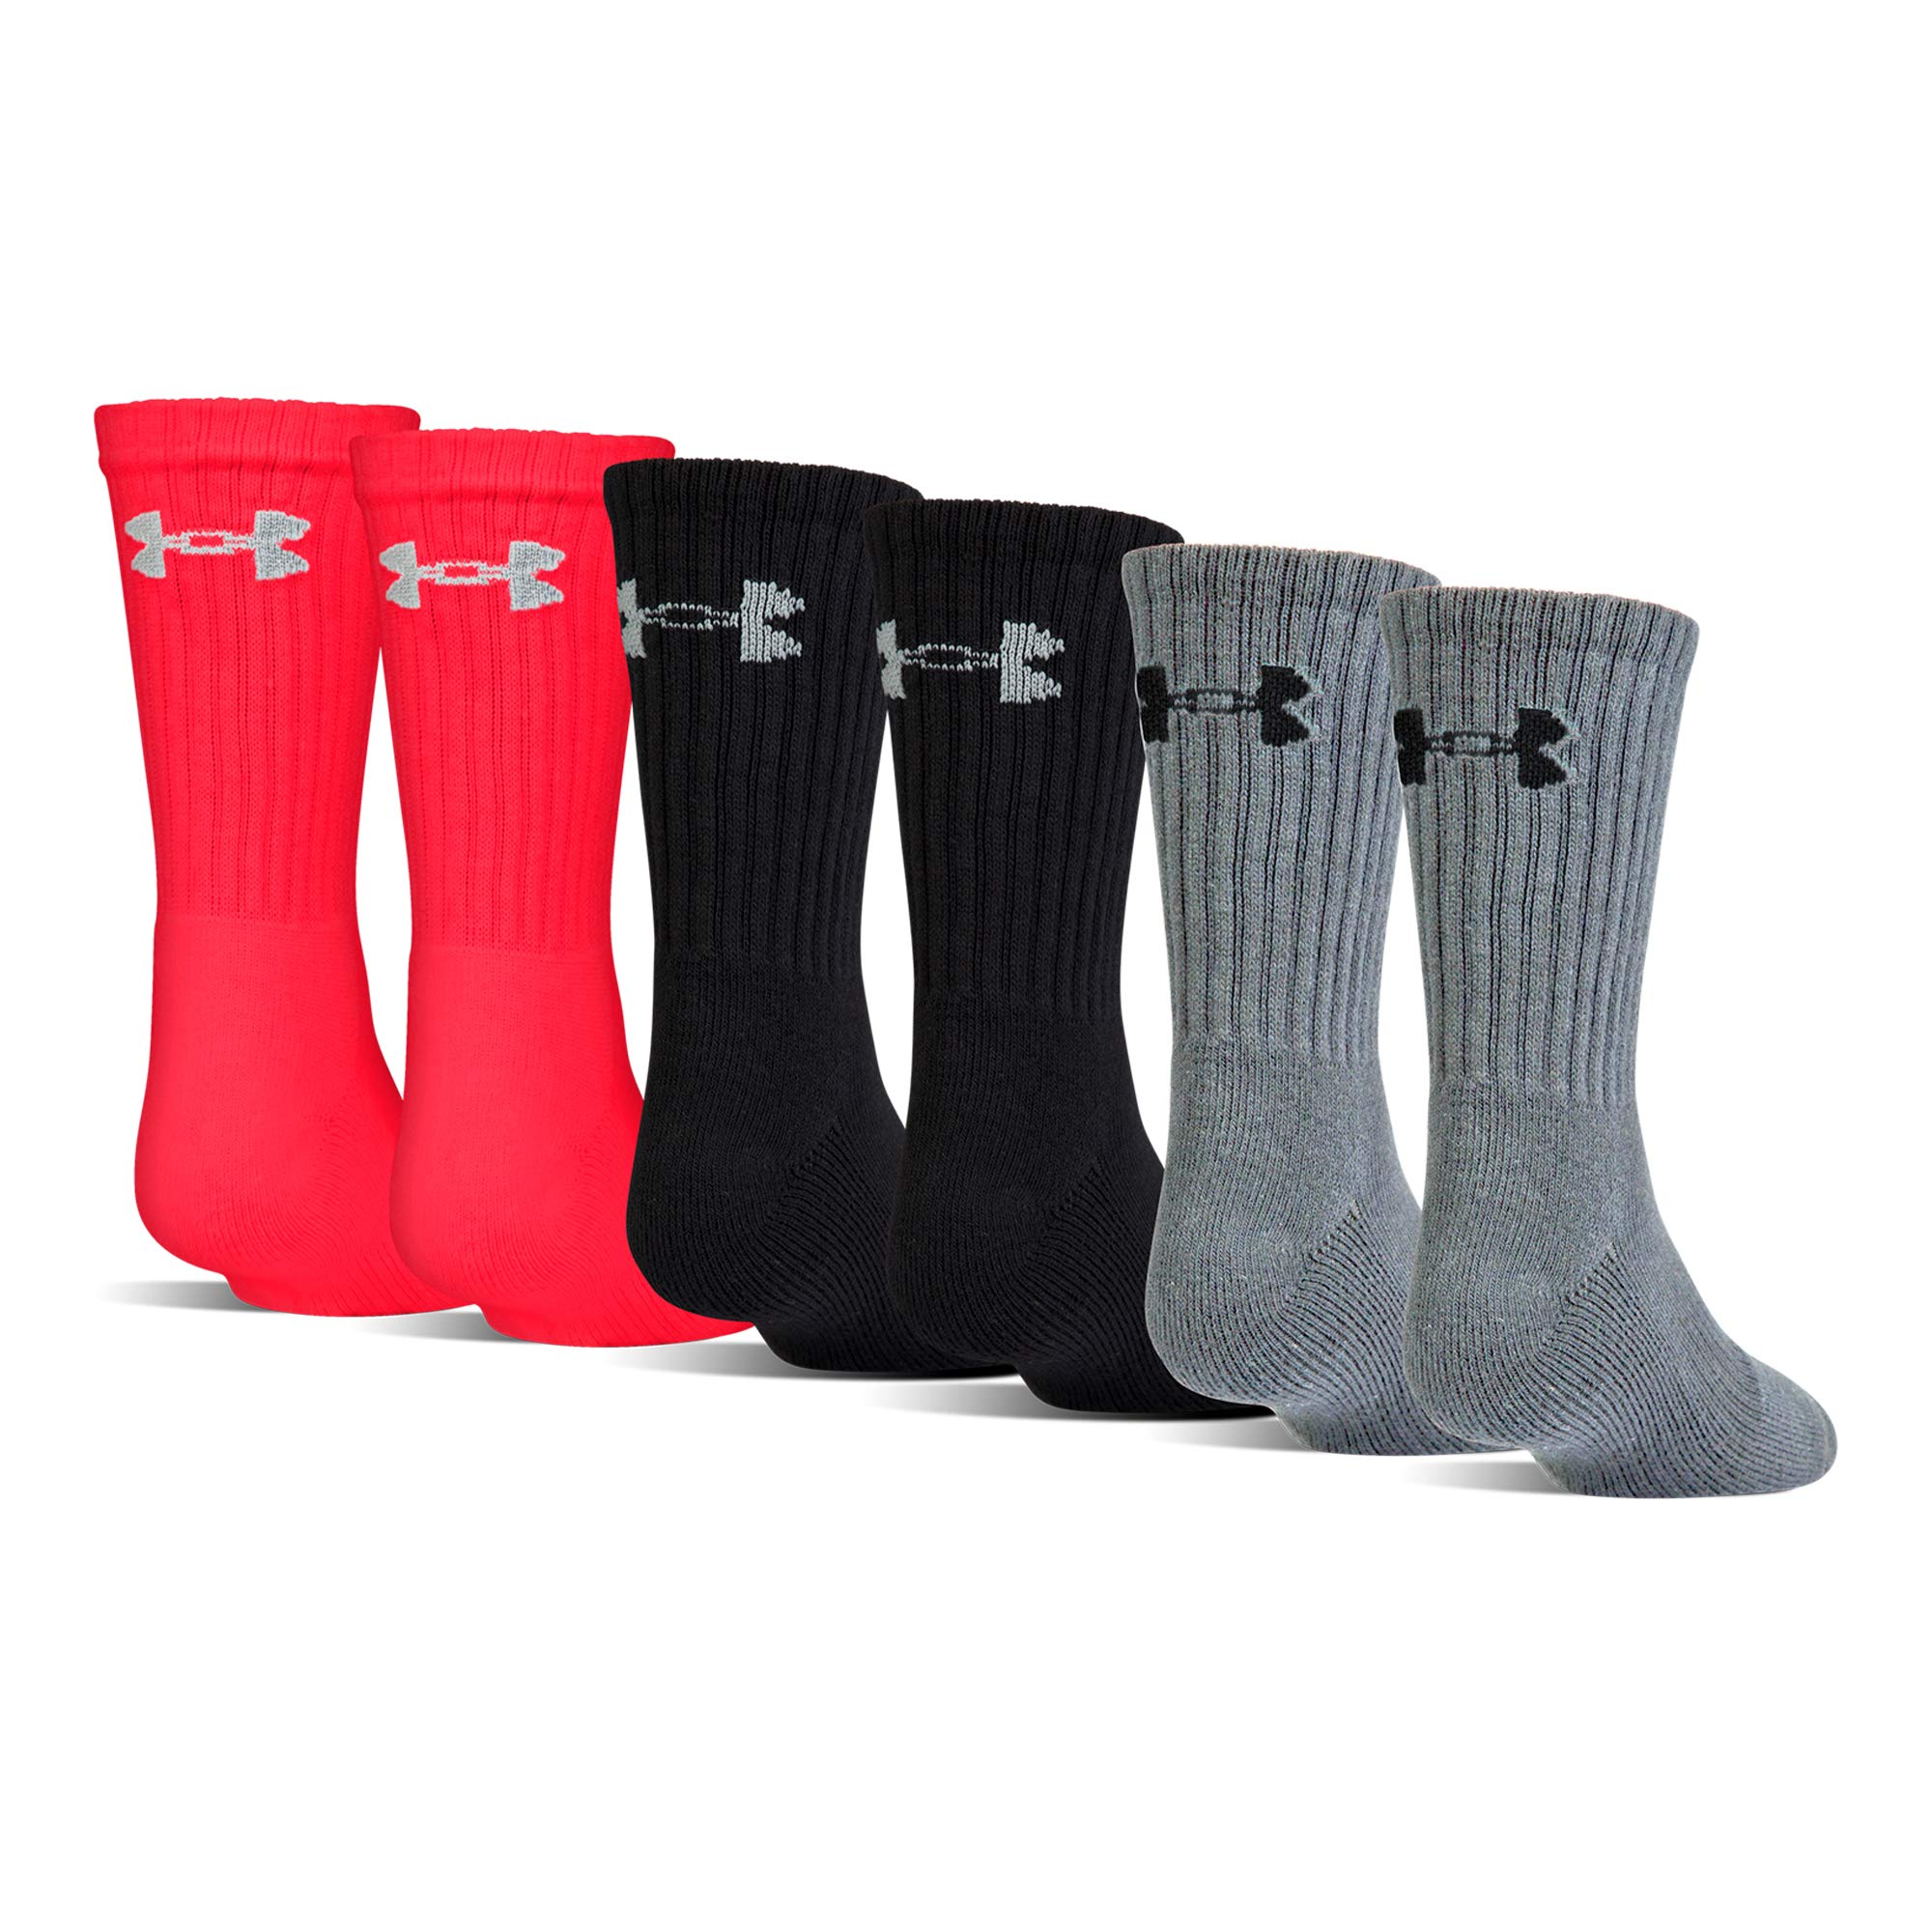 Under Armour Youth Charged Cotton 2.0 Crew Socks (6 Pack), Red/Assorted, Youth Large by Under Armour